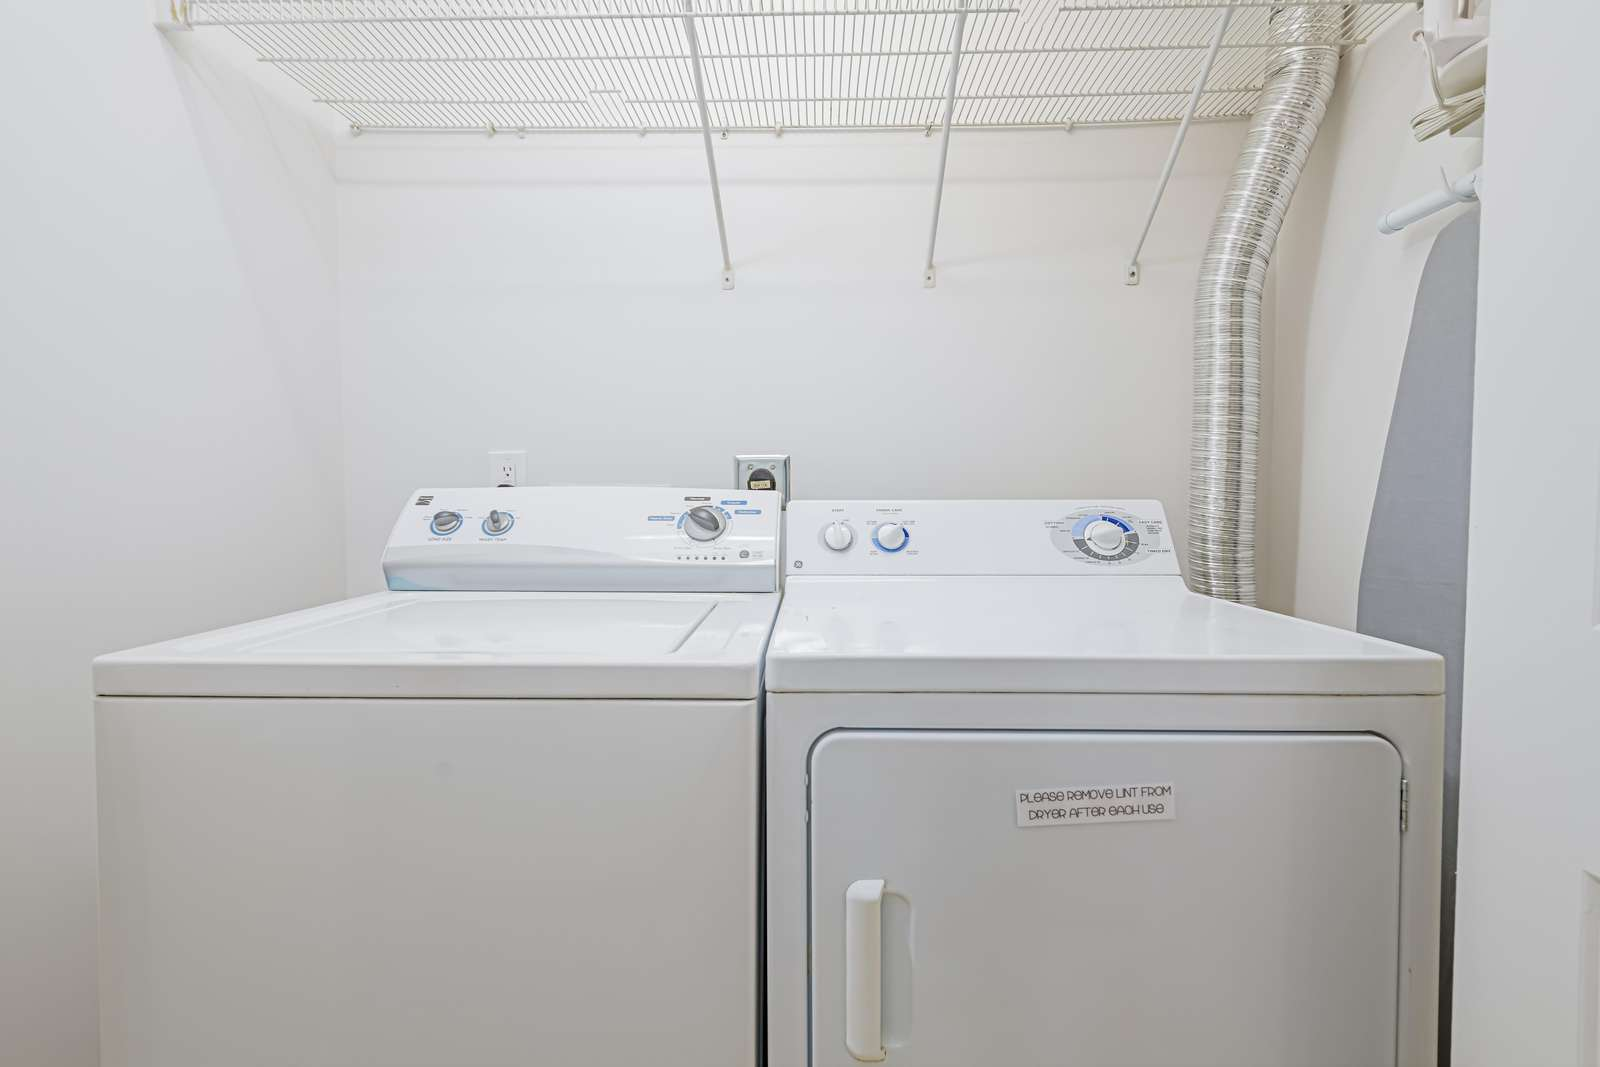 Full size washer/dryer upstairs!